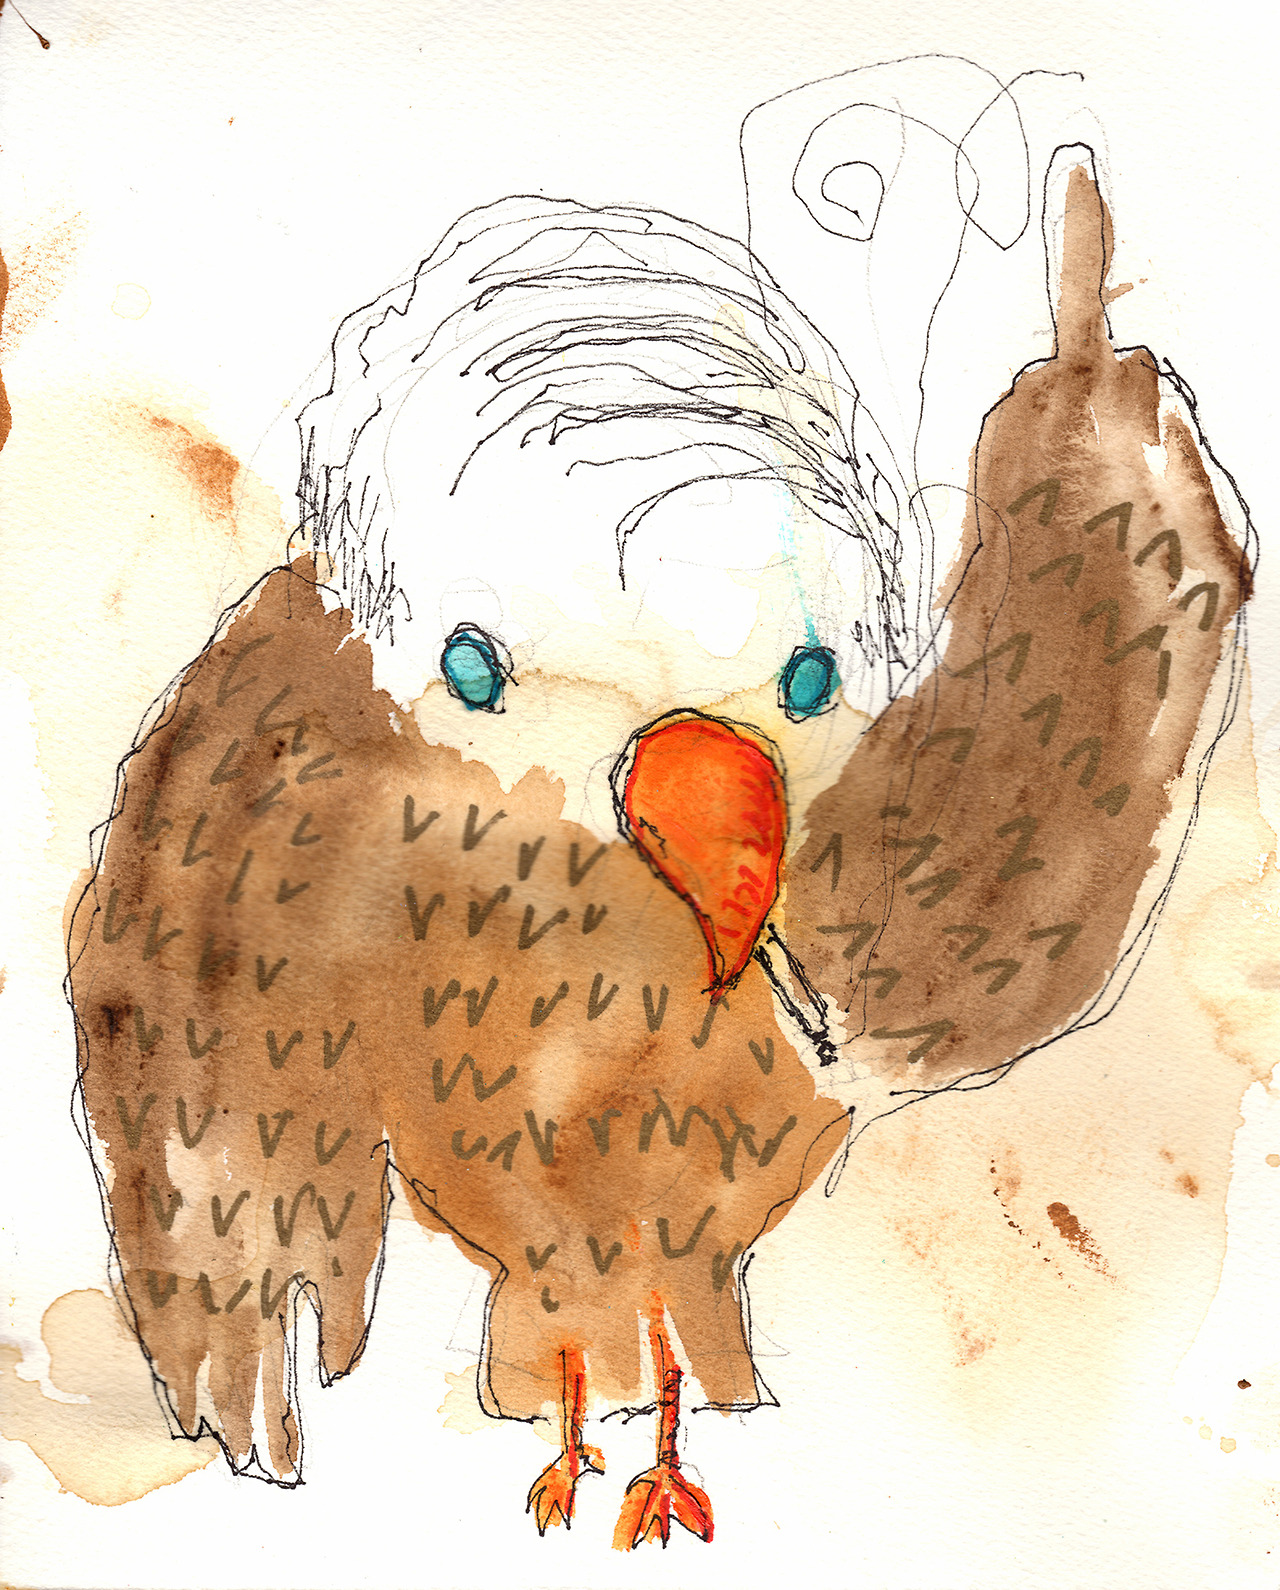 7/25/13 -  Larry the Combover Eagle.     It's a foggy, brain-hurty kind of morning.     Buy it here -  http://taylorwinder.bigcartel.com     Prints of it here -  http://society6.com/taylorwinder